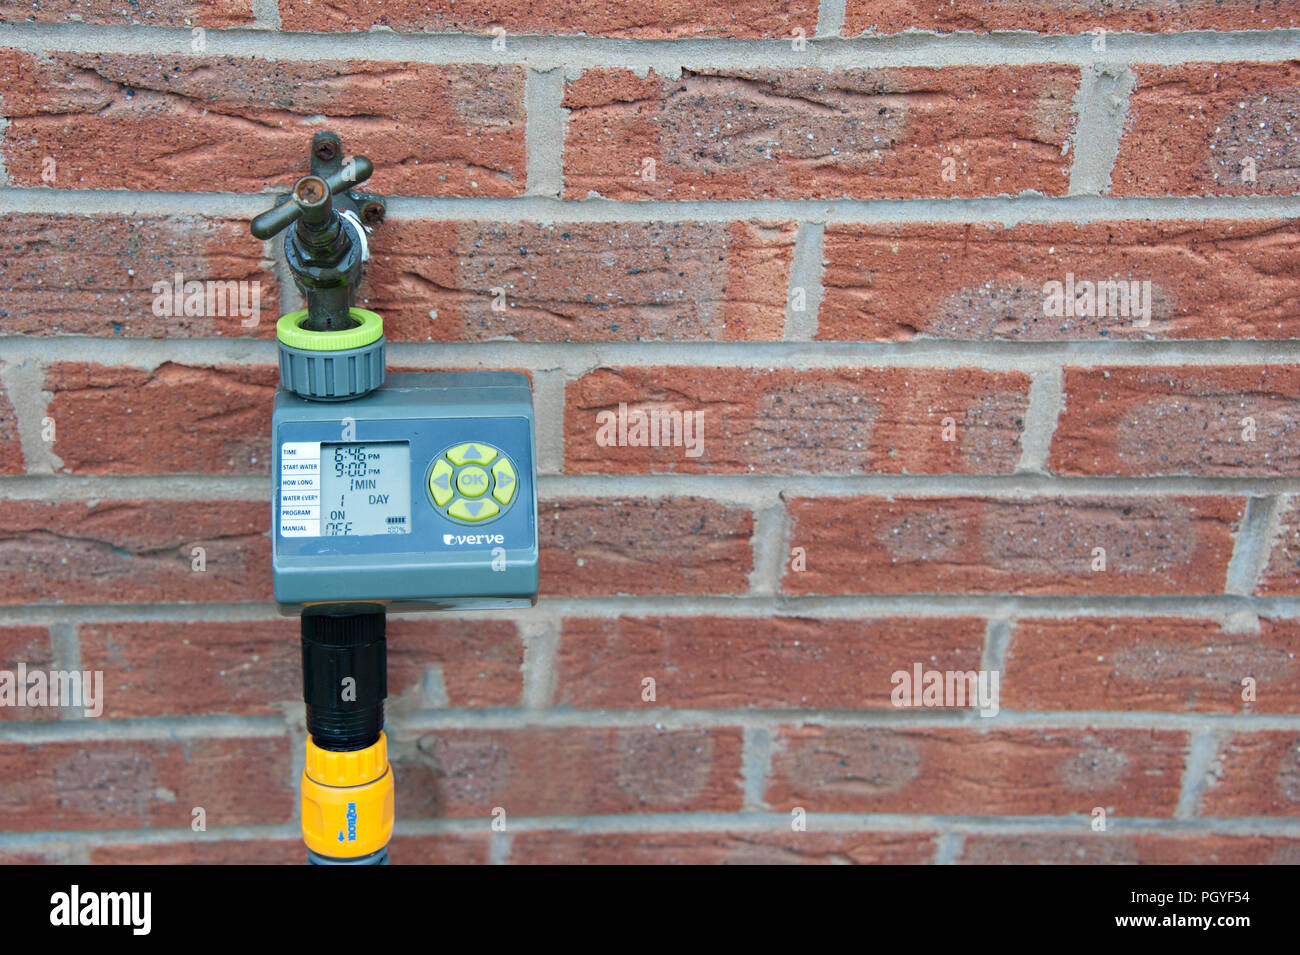 verve programmable water timer fixed to a brick wall Stock Photo